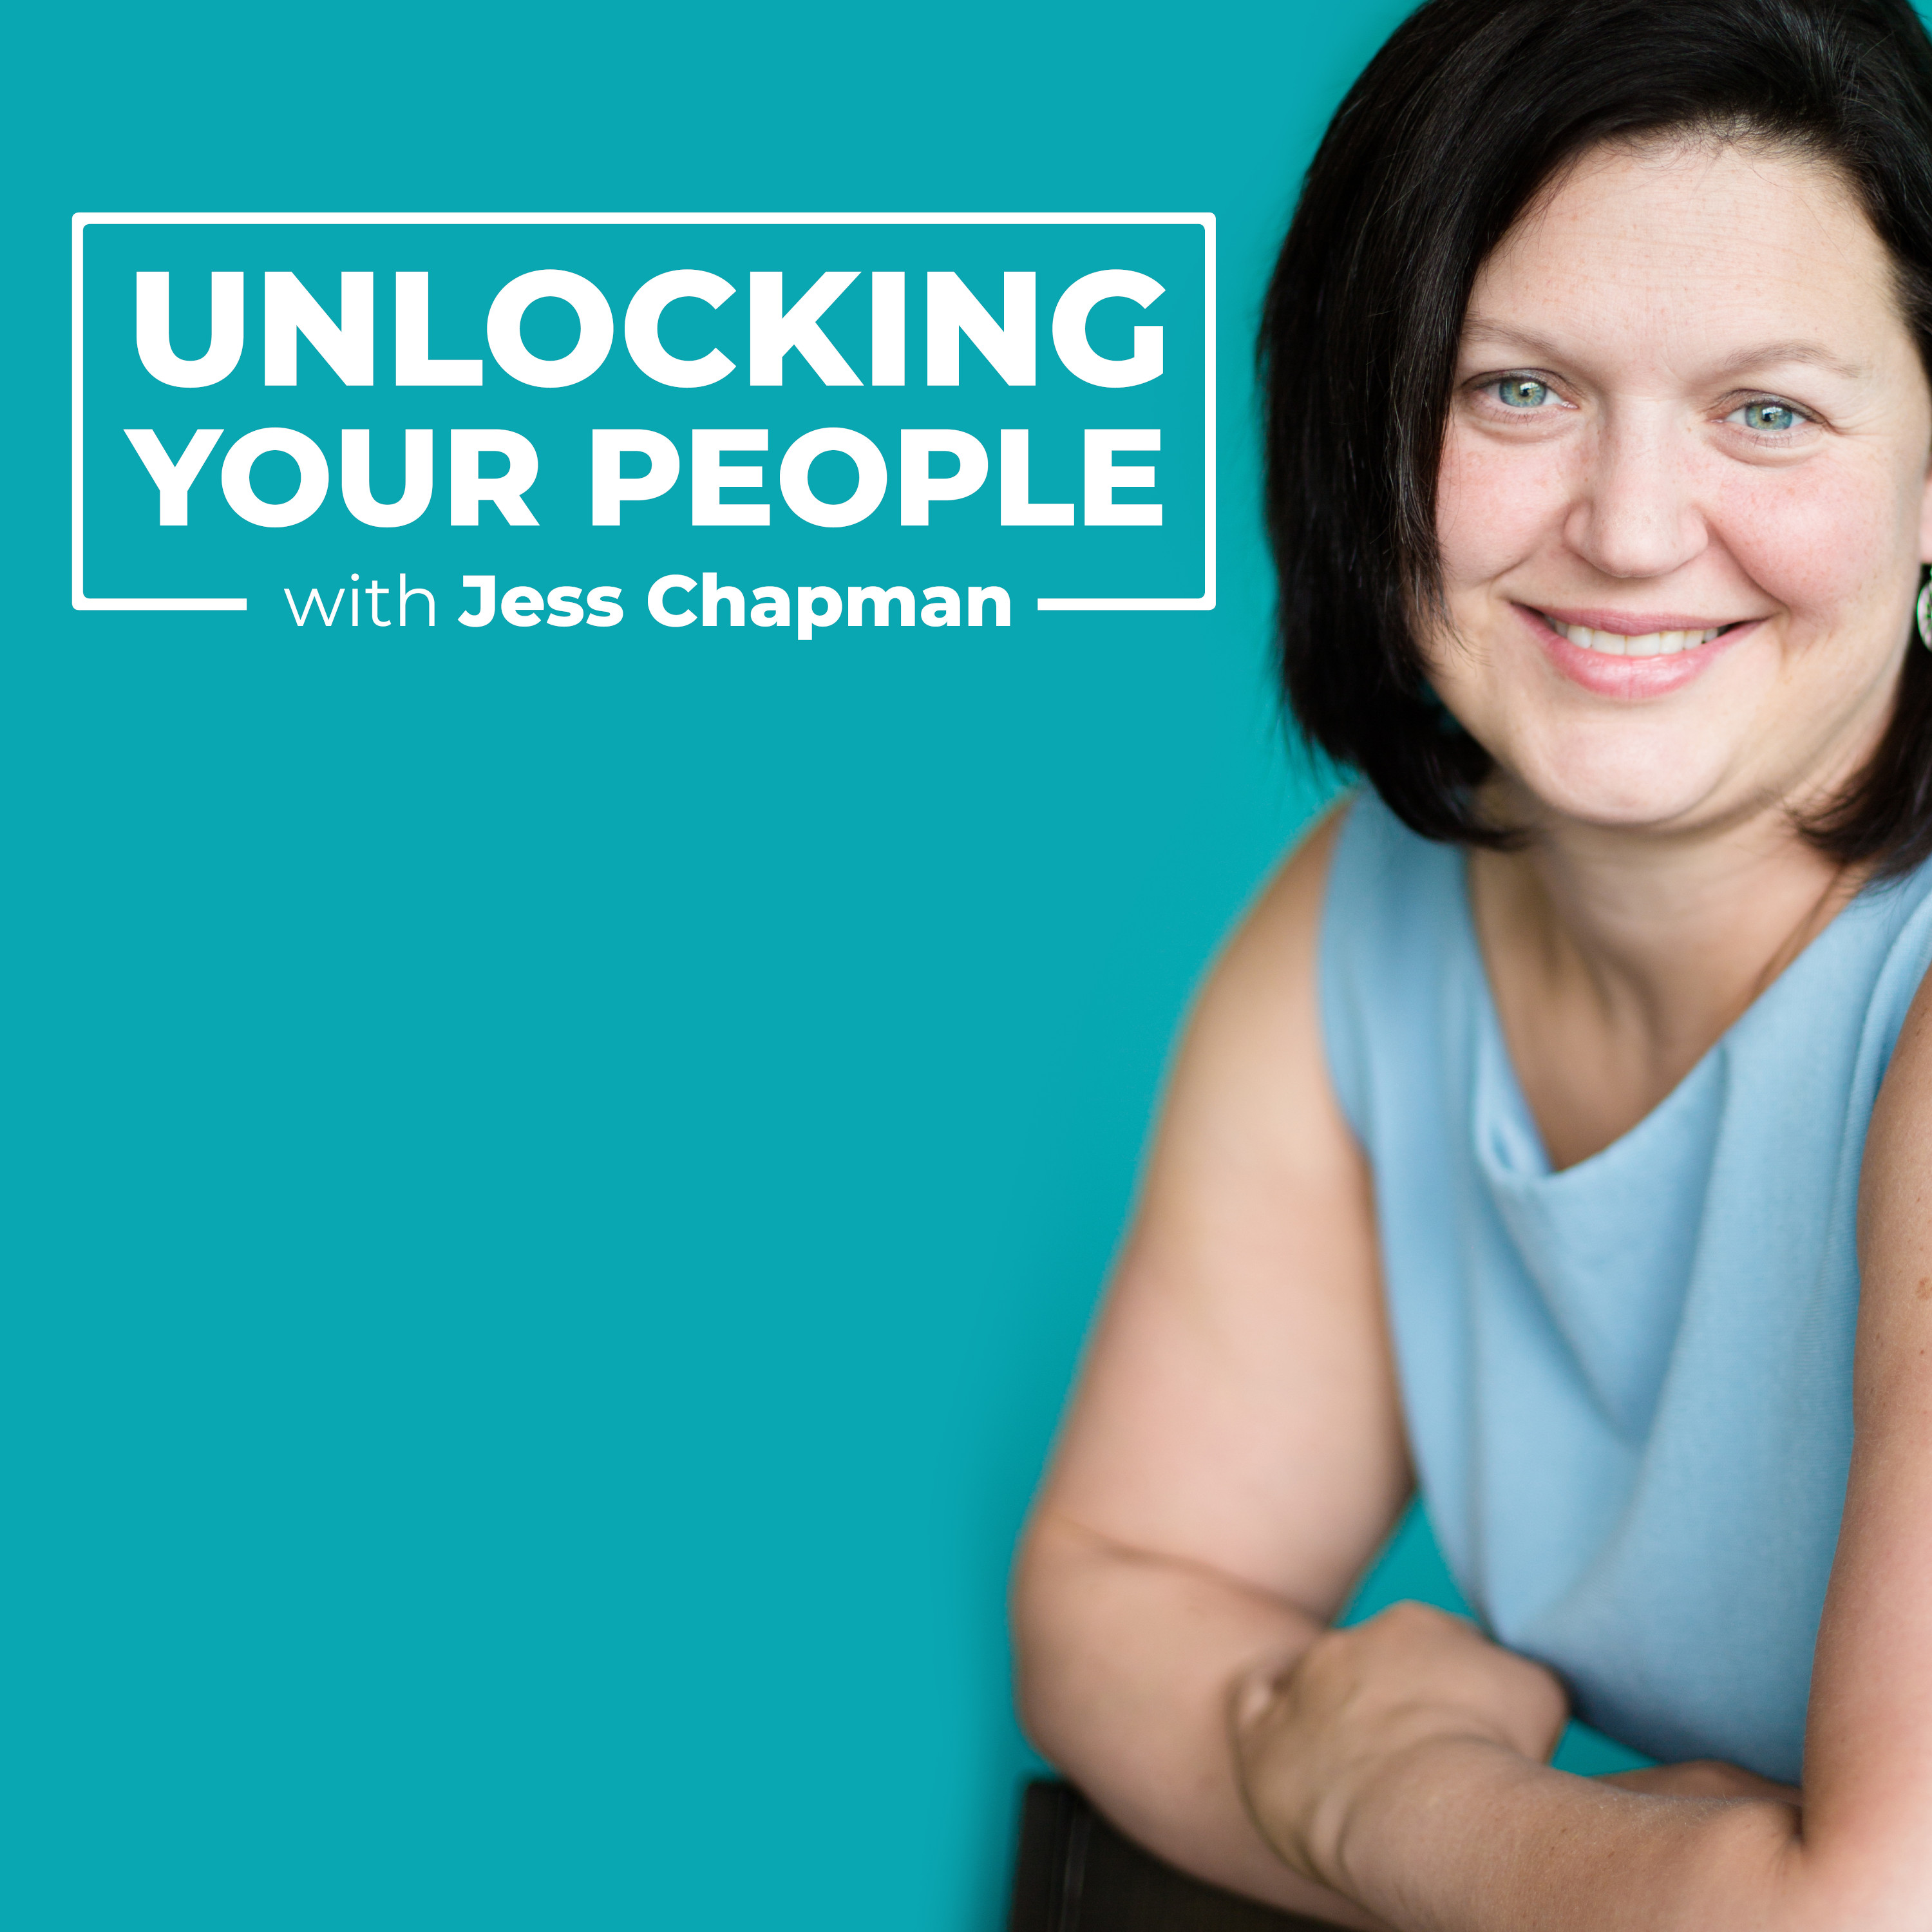 Artwork for podcast Unlocking Your People